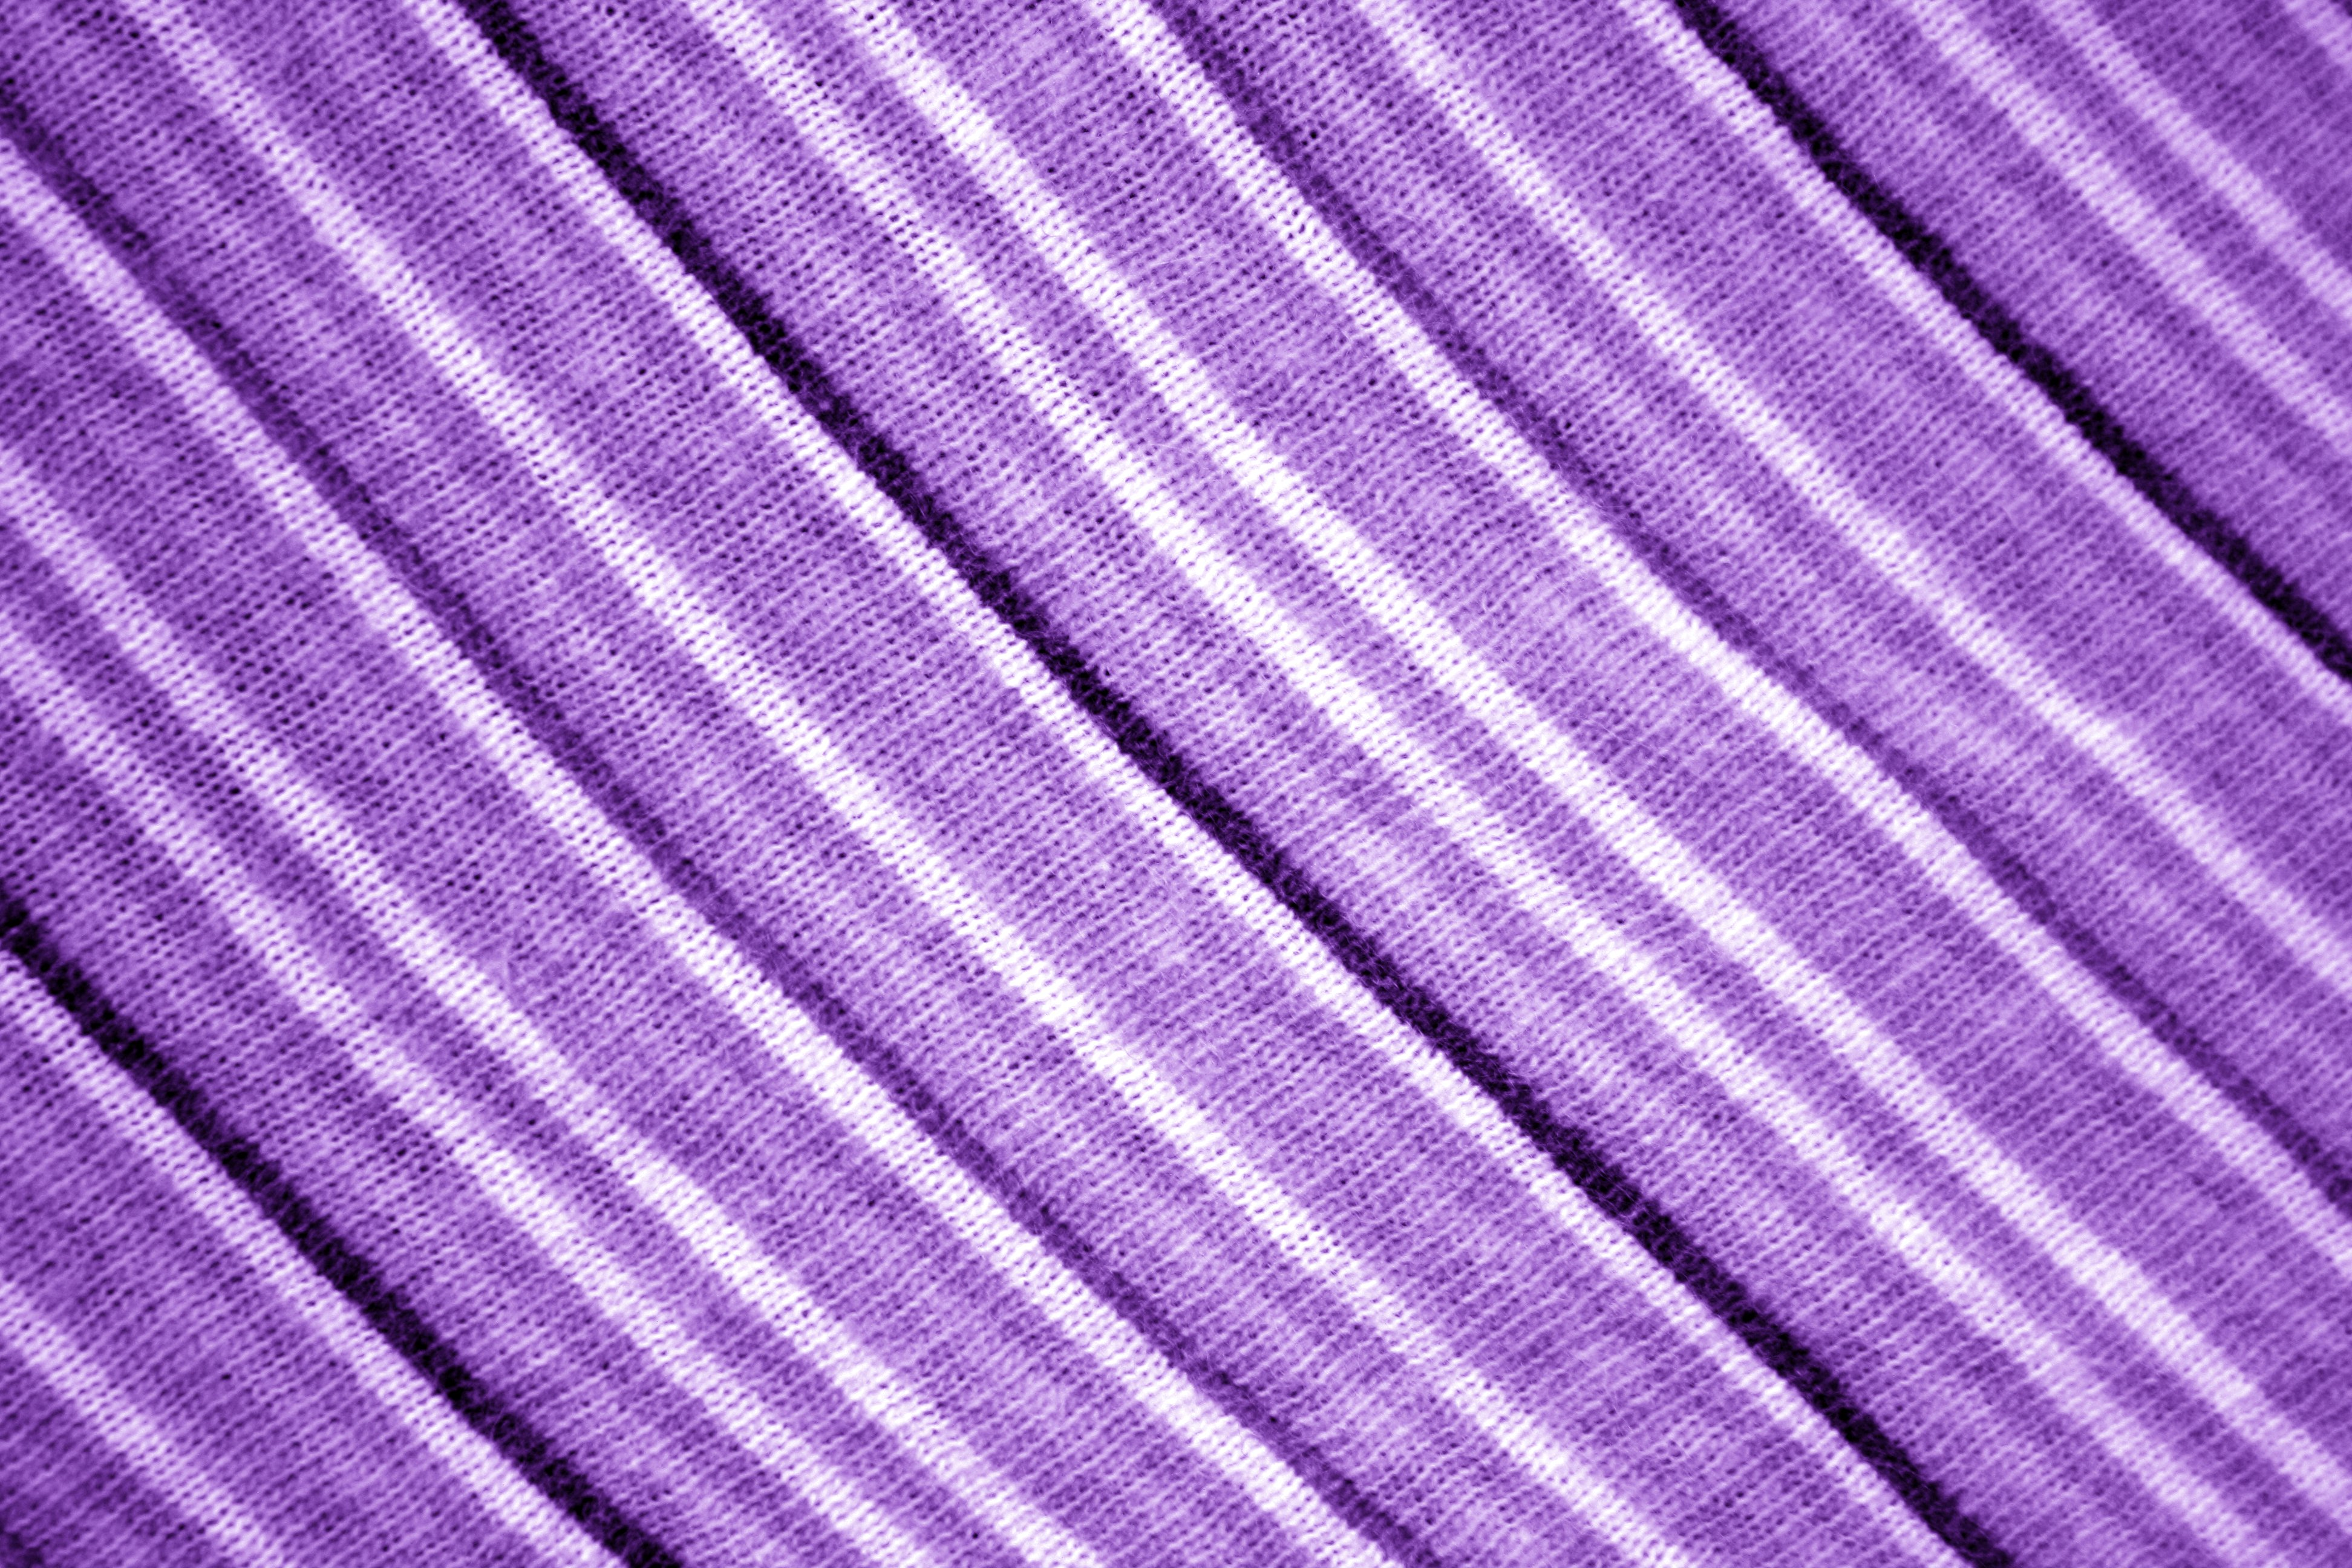 Diagonally striped purple knit fabric texture picture